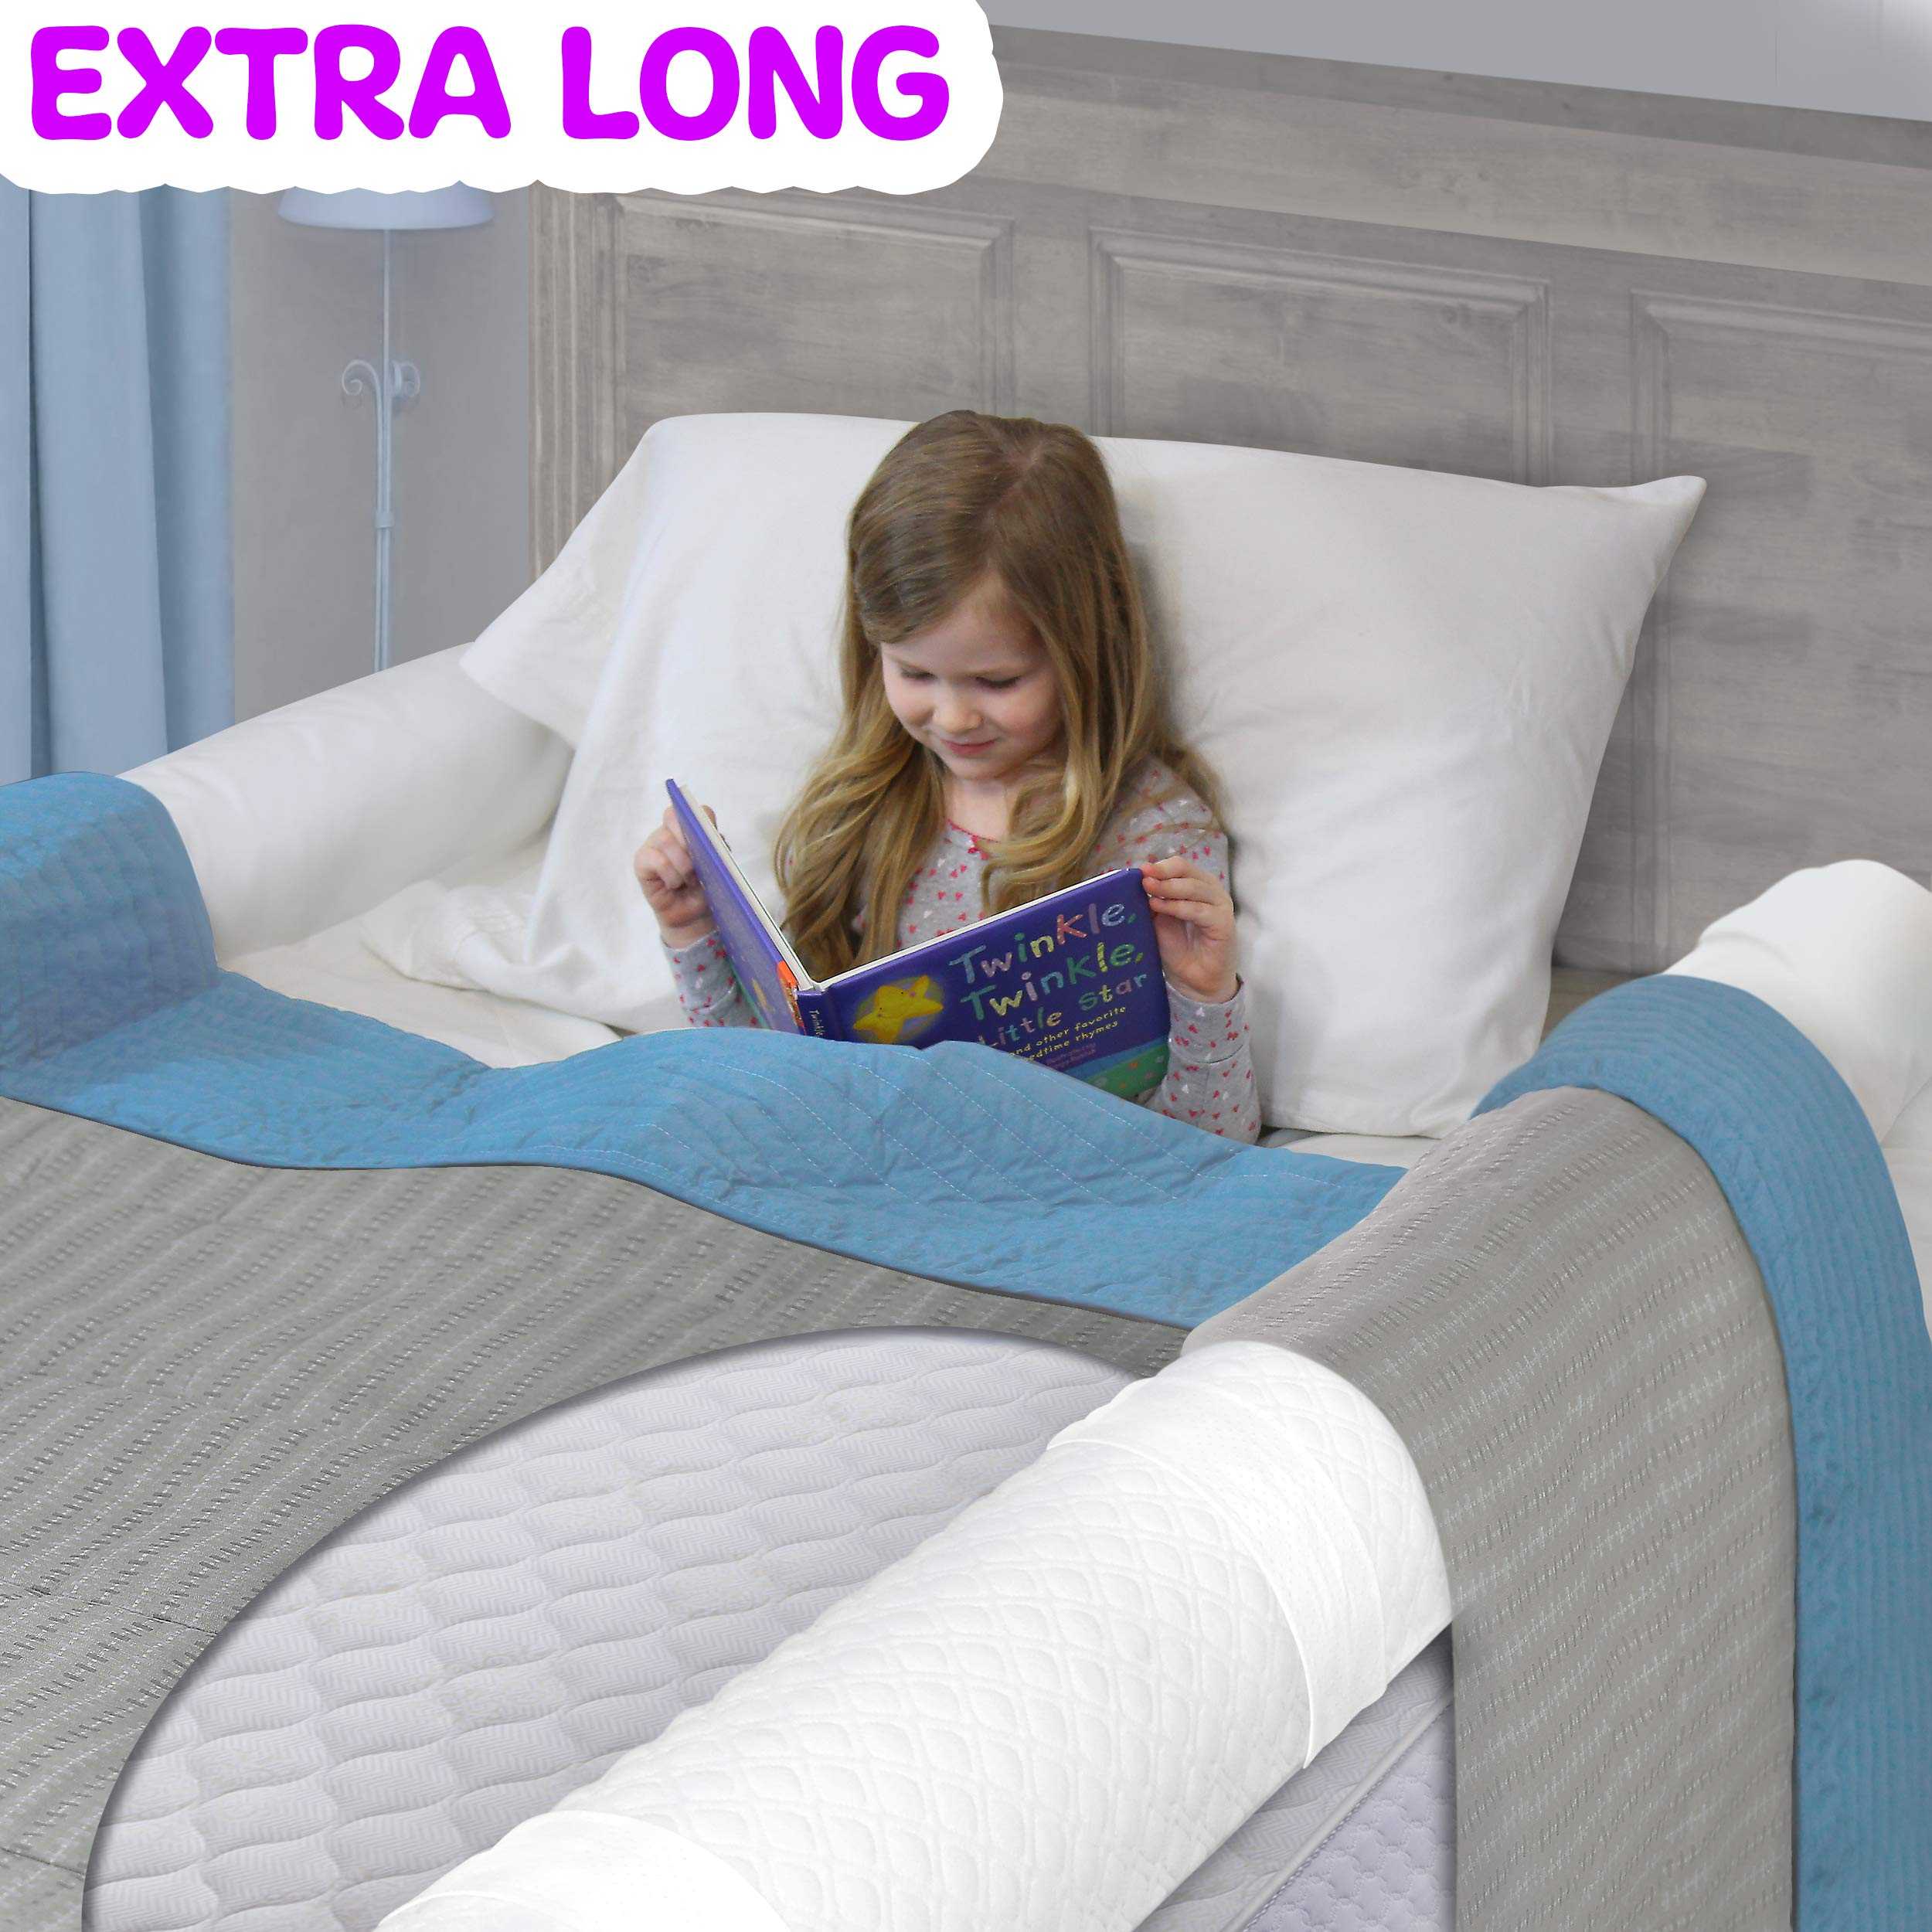 [1-Pack] Extra Long Bed Rails for Toddler | Soft Foam Bed Bumper for Kids, Special Needs, Elderly | Baby Bed Guard | Child Bed Safety Side Rails With Water Resistant Washable Cover